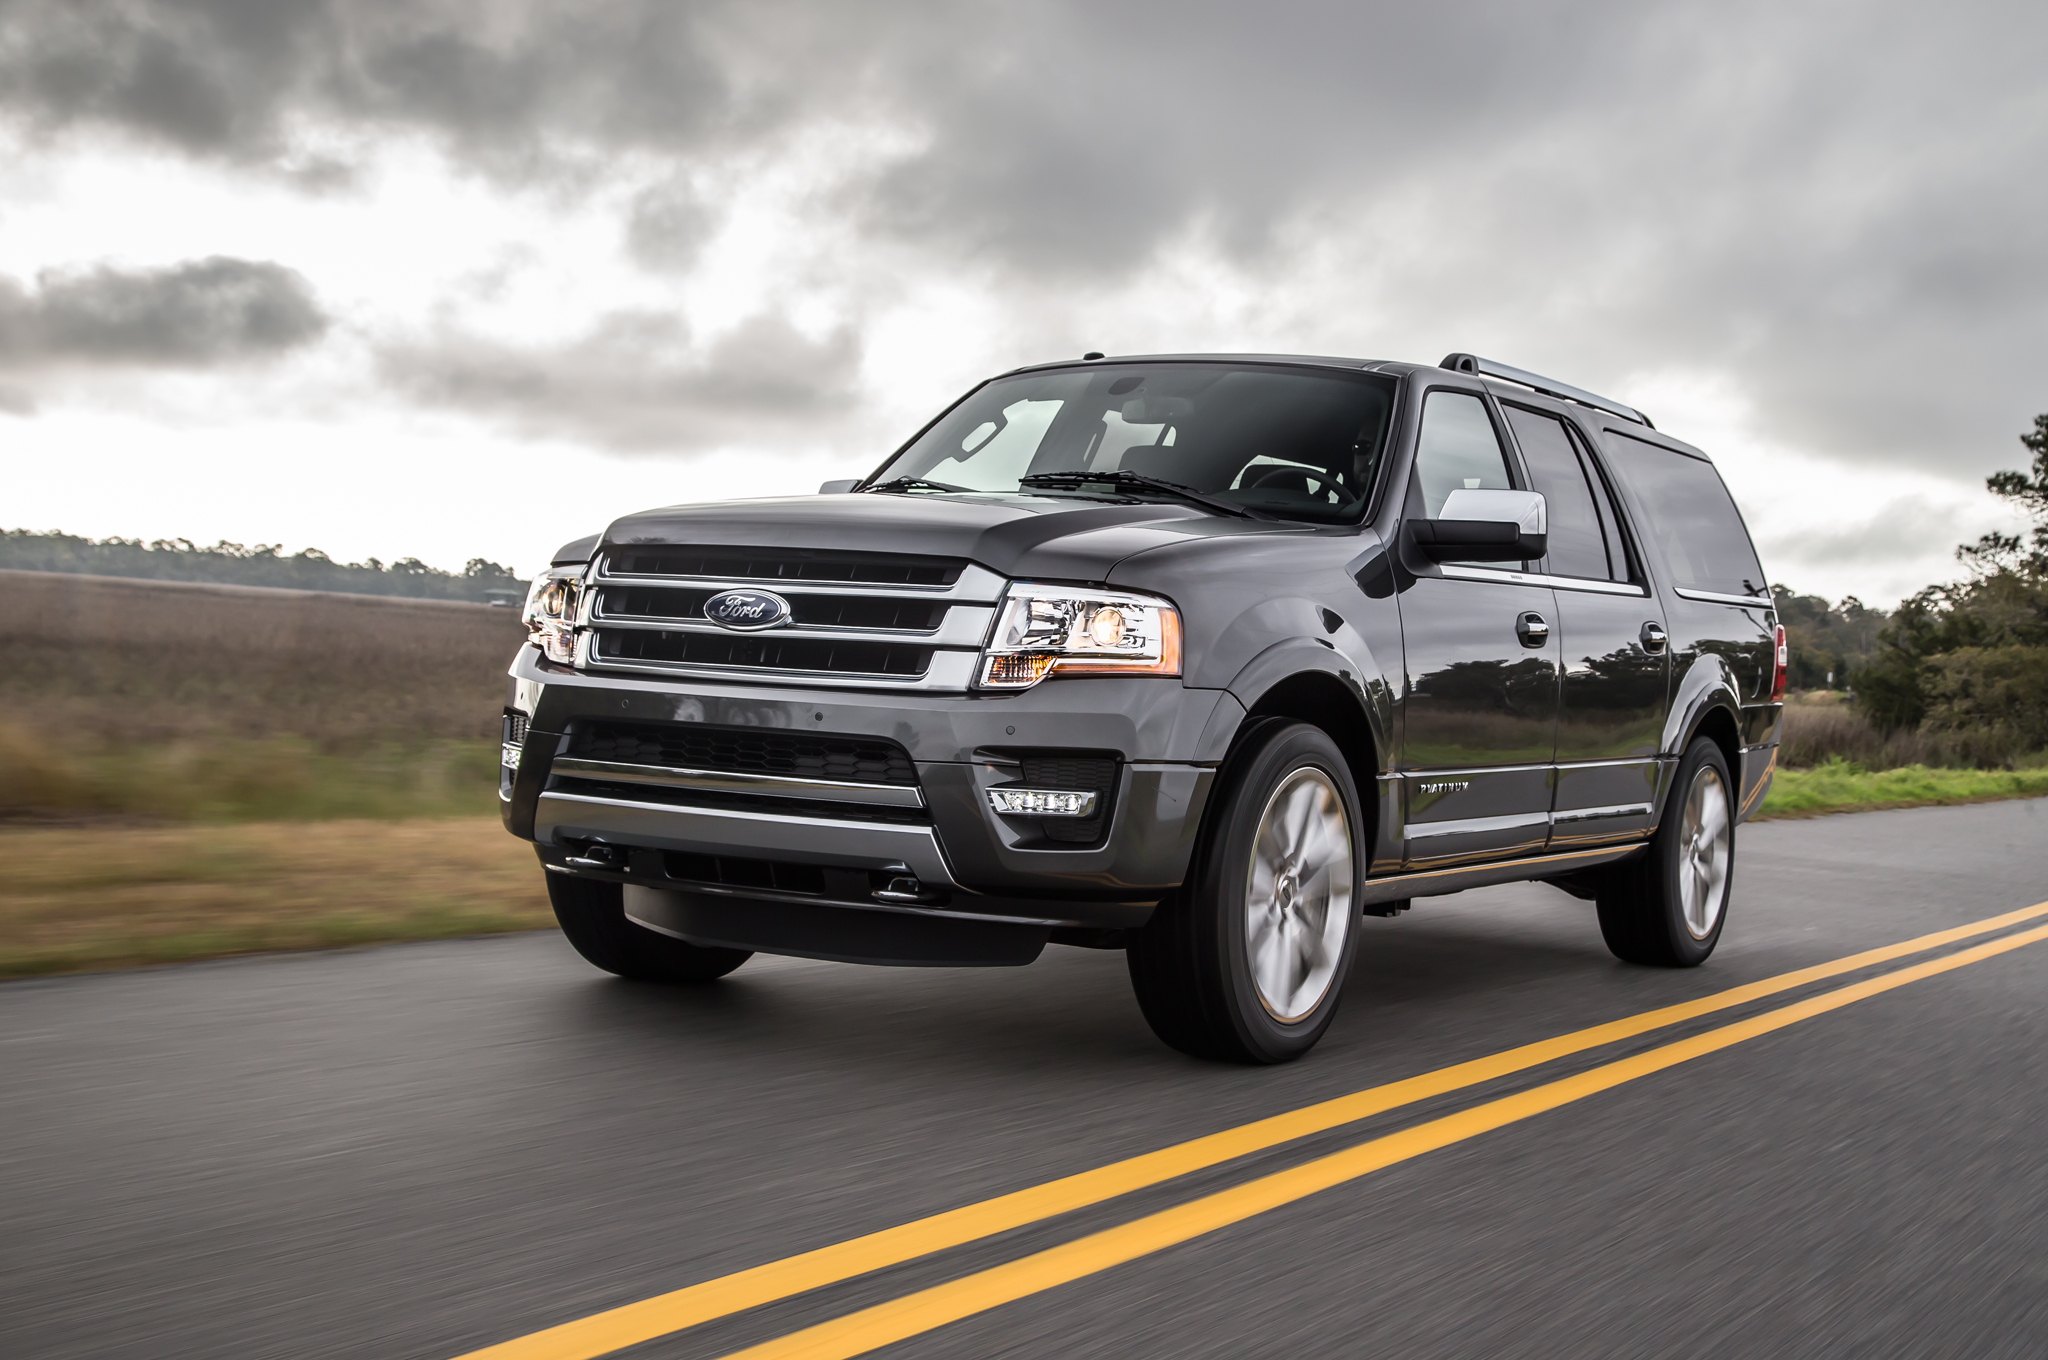 2015 Ford Expedition Performance (Photo 4 of 6)